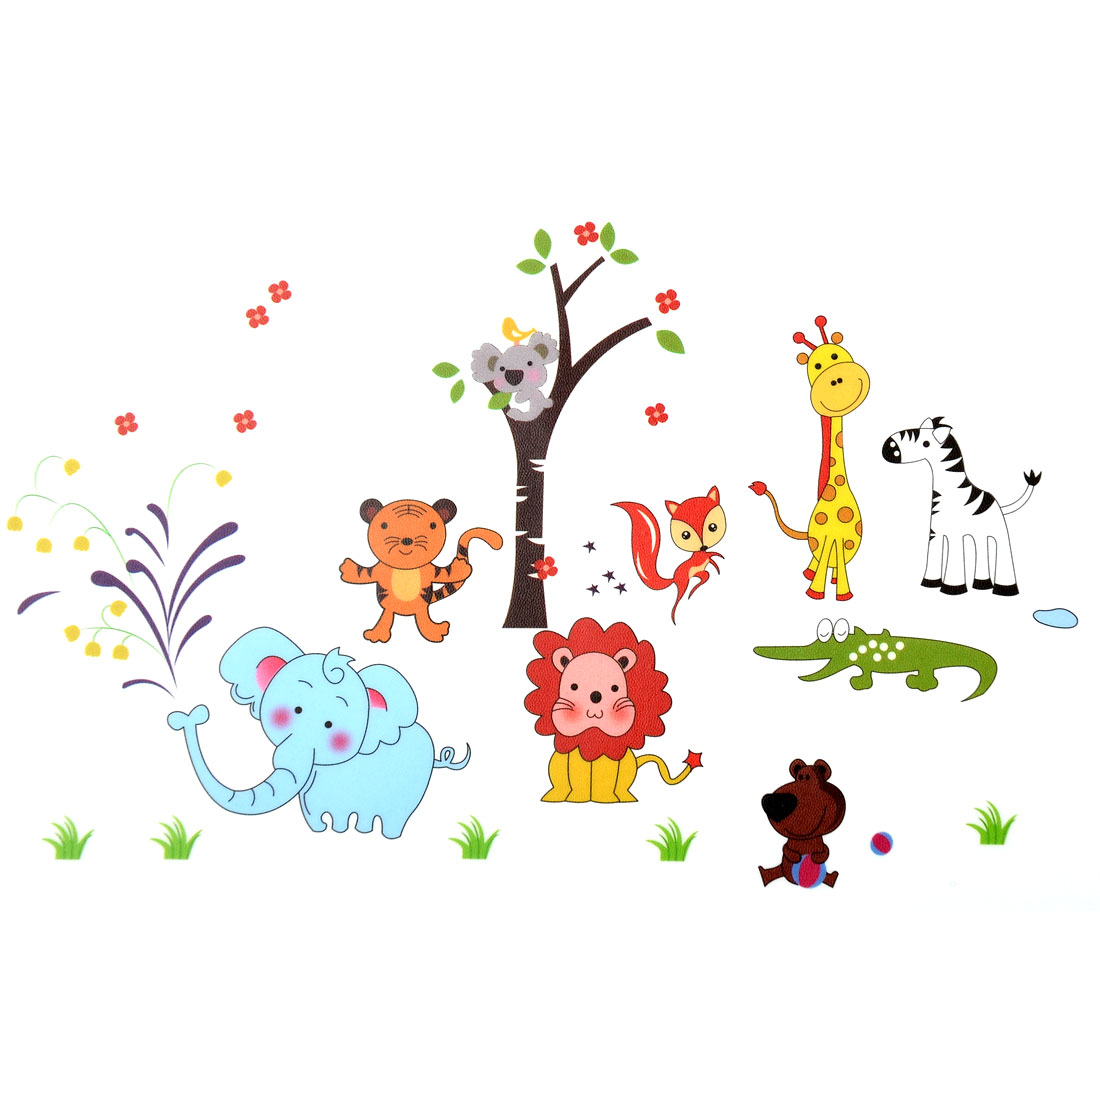 Nursery Home Animals Tree Print Adhesive Wall Sticker Decal Wallpaper 90x60cm